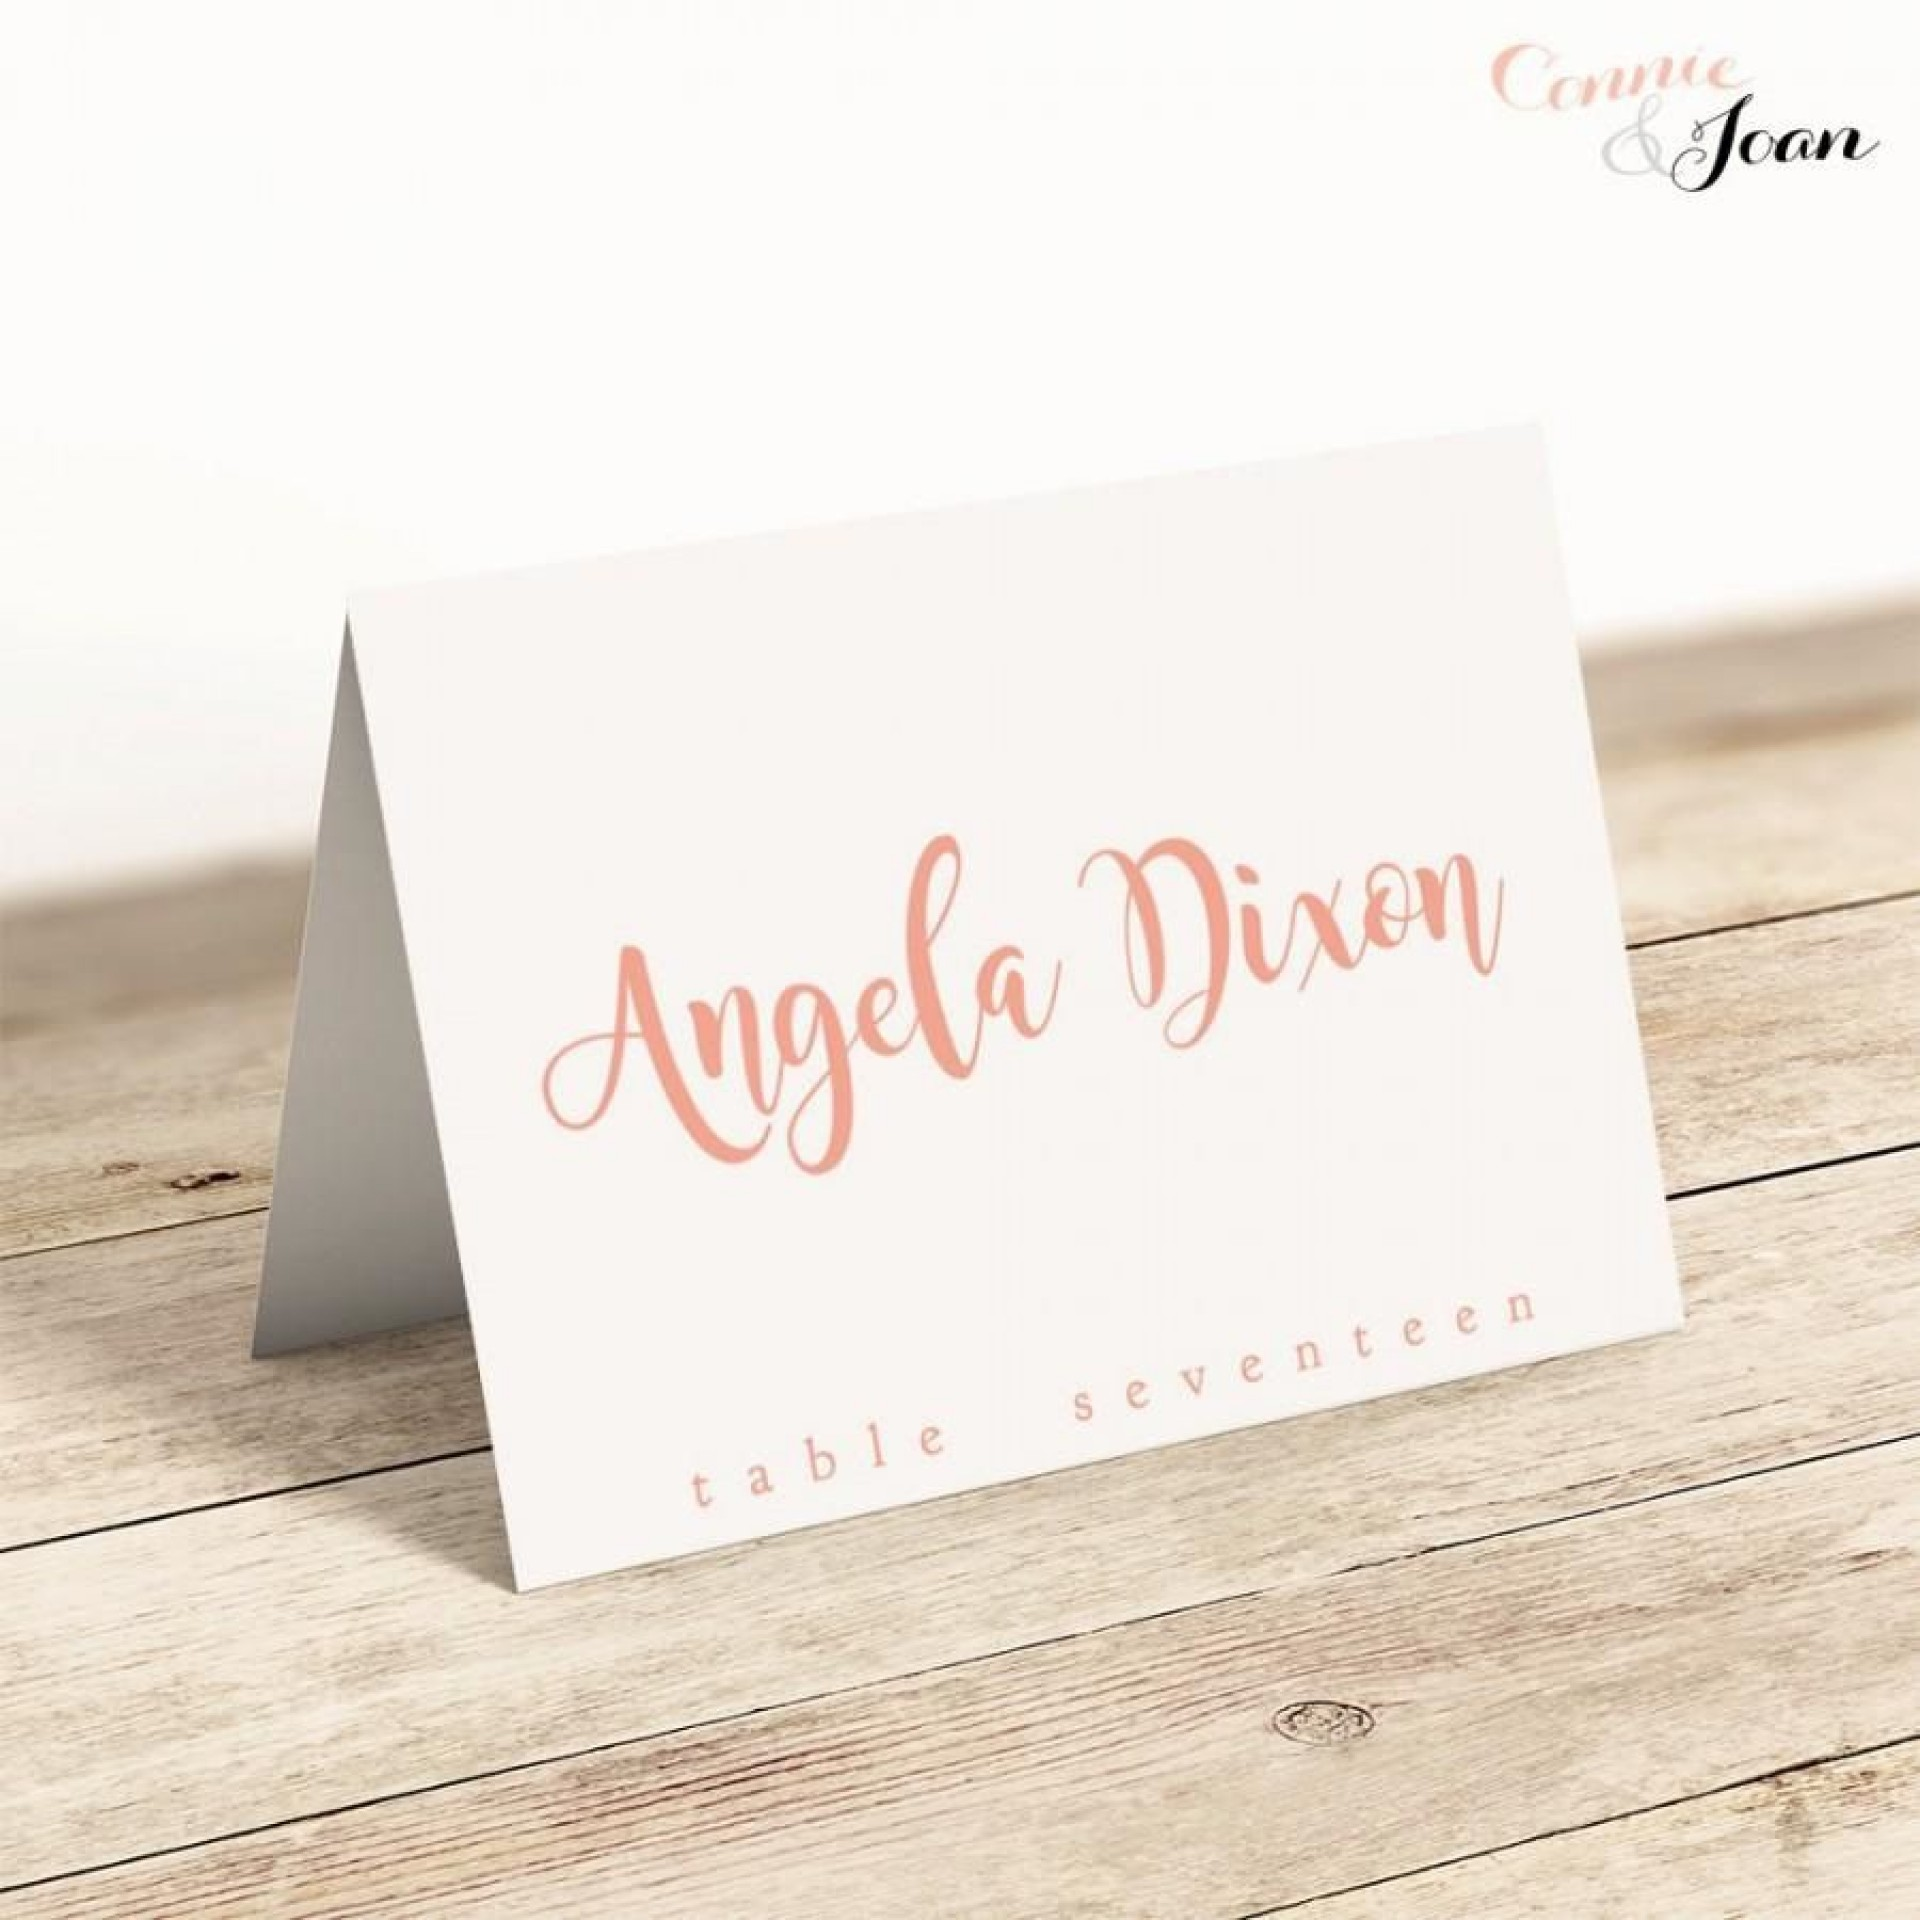 008 Shocking Name Place Card Template For Wedding Design  Free Word1920